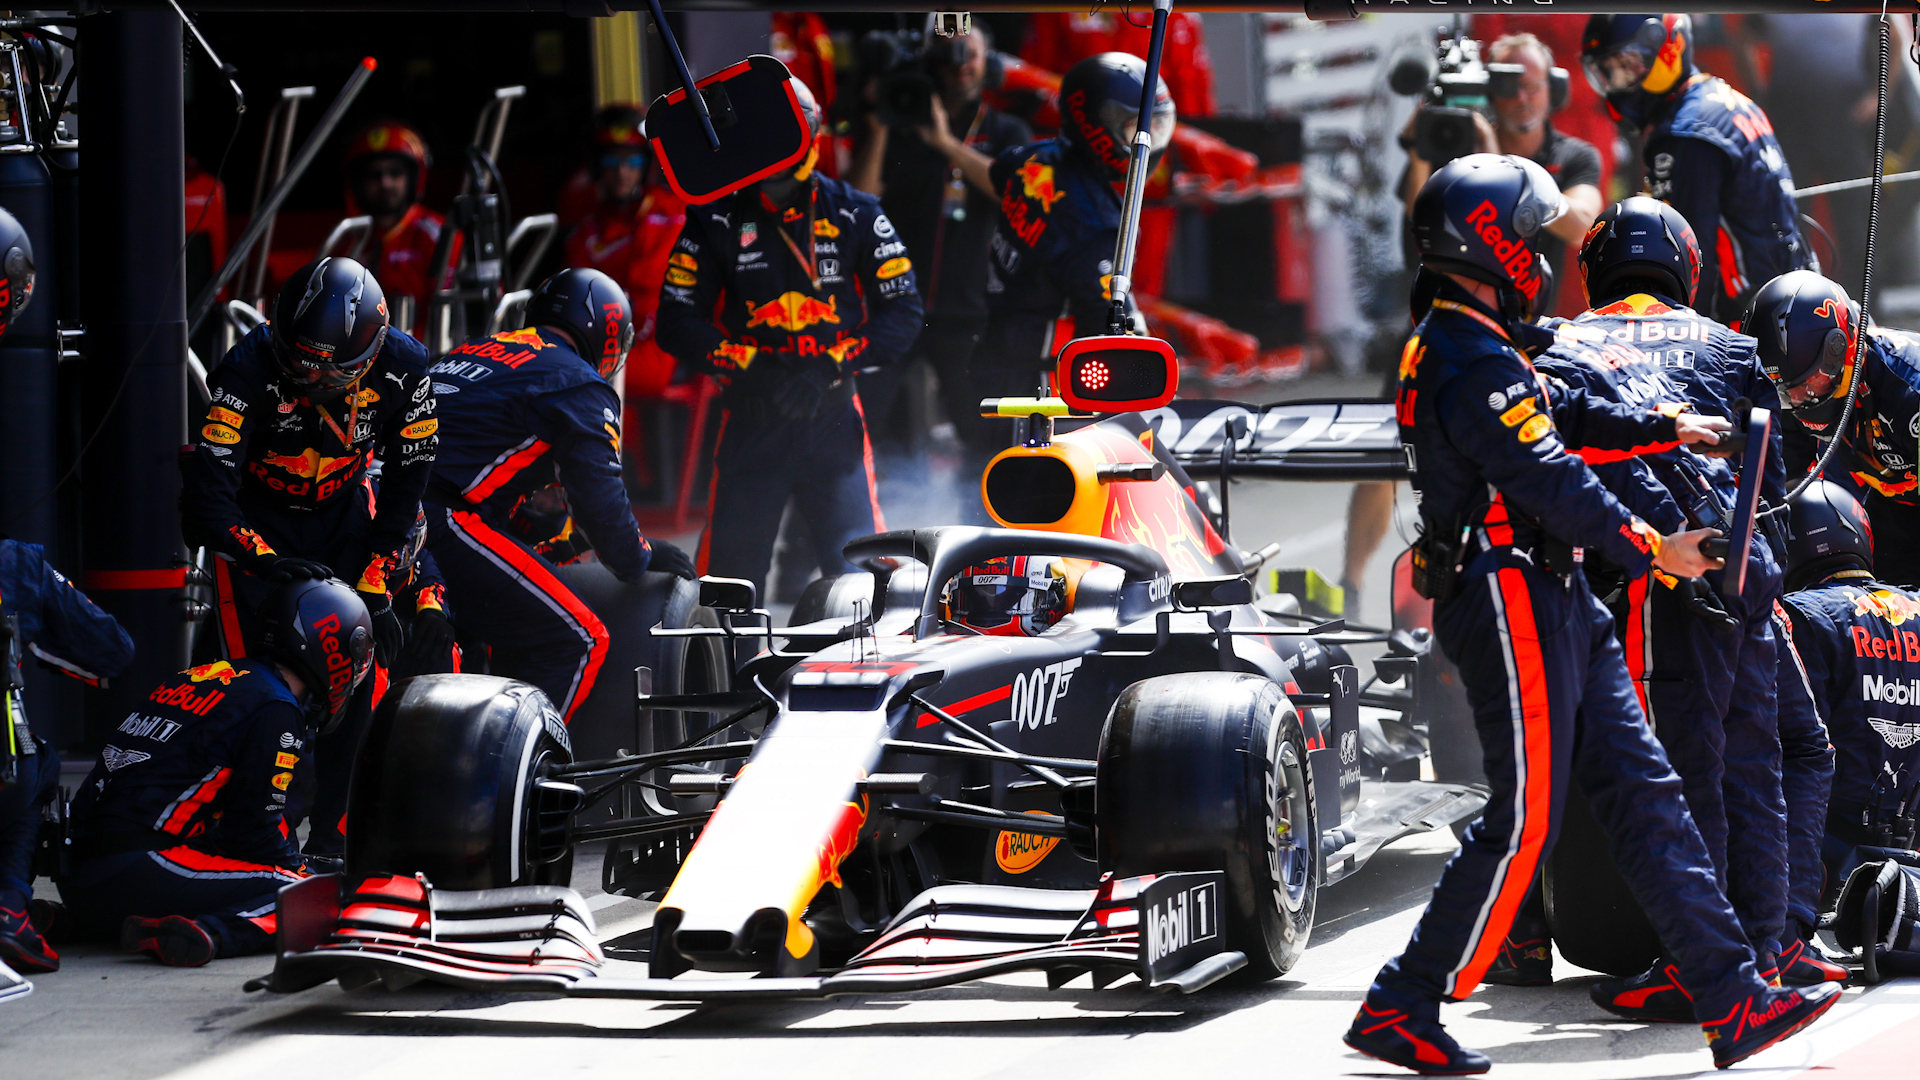 Watch Red Bull break pit stop world record at British Grand Prix